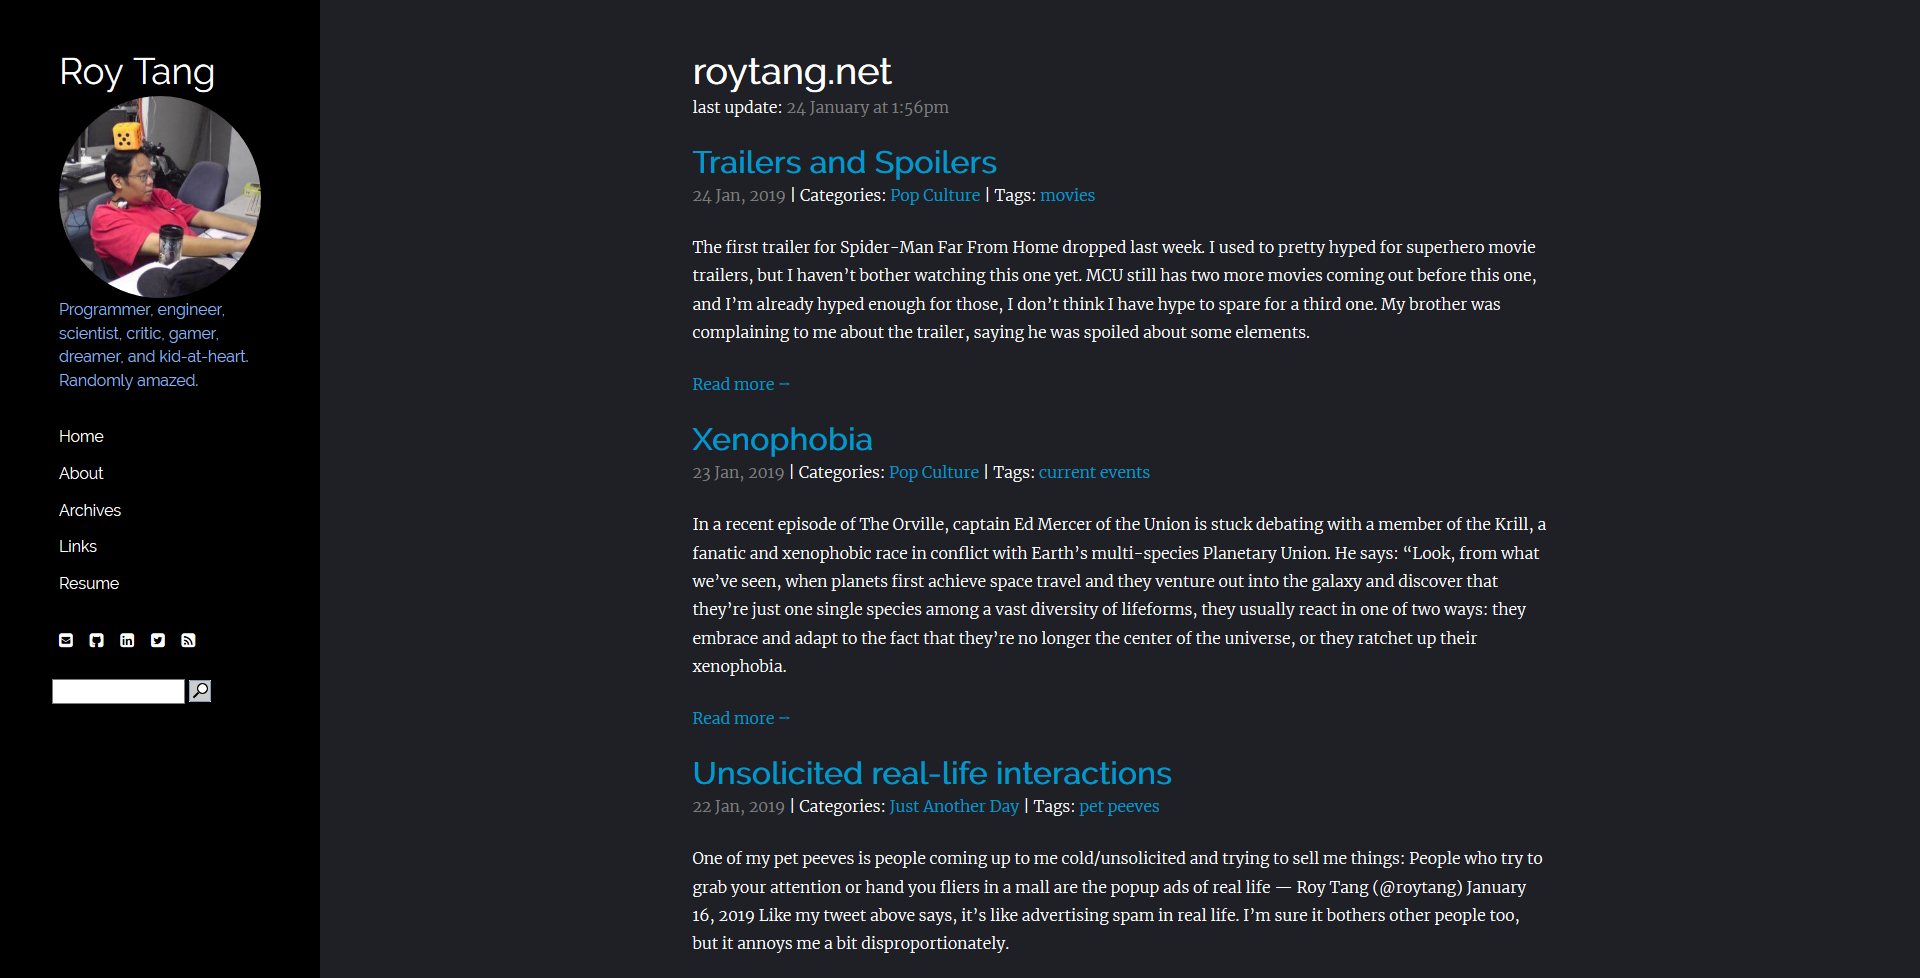 """I always wish I had kept screenshots of what my blog looked like back during each of the myriad theme changes I've done over the years, as a kind of timeline of how my website aesthetic has evolved (or gotten worse, whatever). I recently found the stylesheets and such for my old django-powered blog from circa 2008-2009, and recently there's been this """"10-year challenge"""" meme where people show how they've changed over the past 10 years. Tt felt like a pefect opportunity to reconstruct that old version and also capture an image of the current version for posterity's sake. I"""